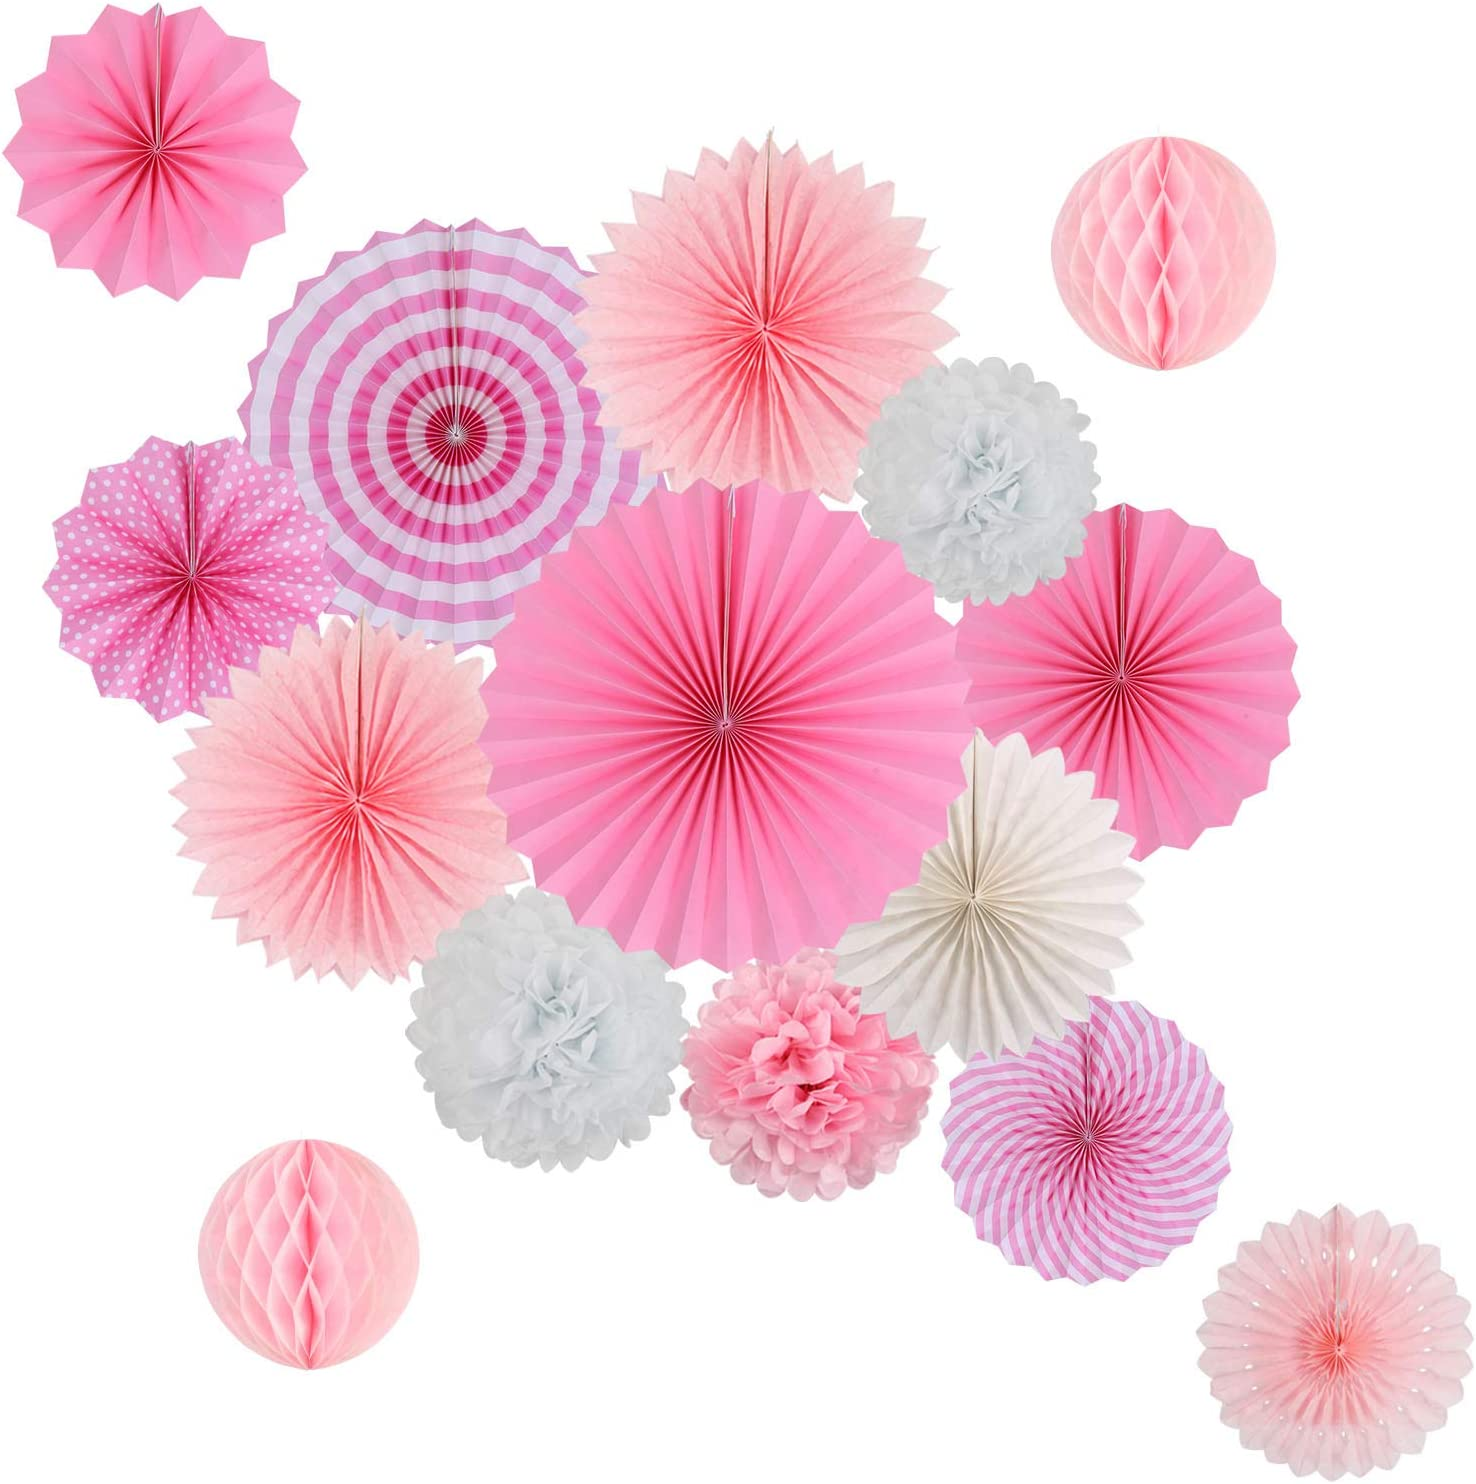 Hanging Party Decorations Set Tissue Paper Fan Paper Pom Poms Flowers and Honeycomb Ball for Wedding Birthday Baby Showers Engagement Party Decor Pink Kit